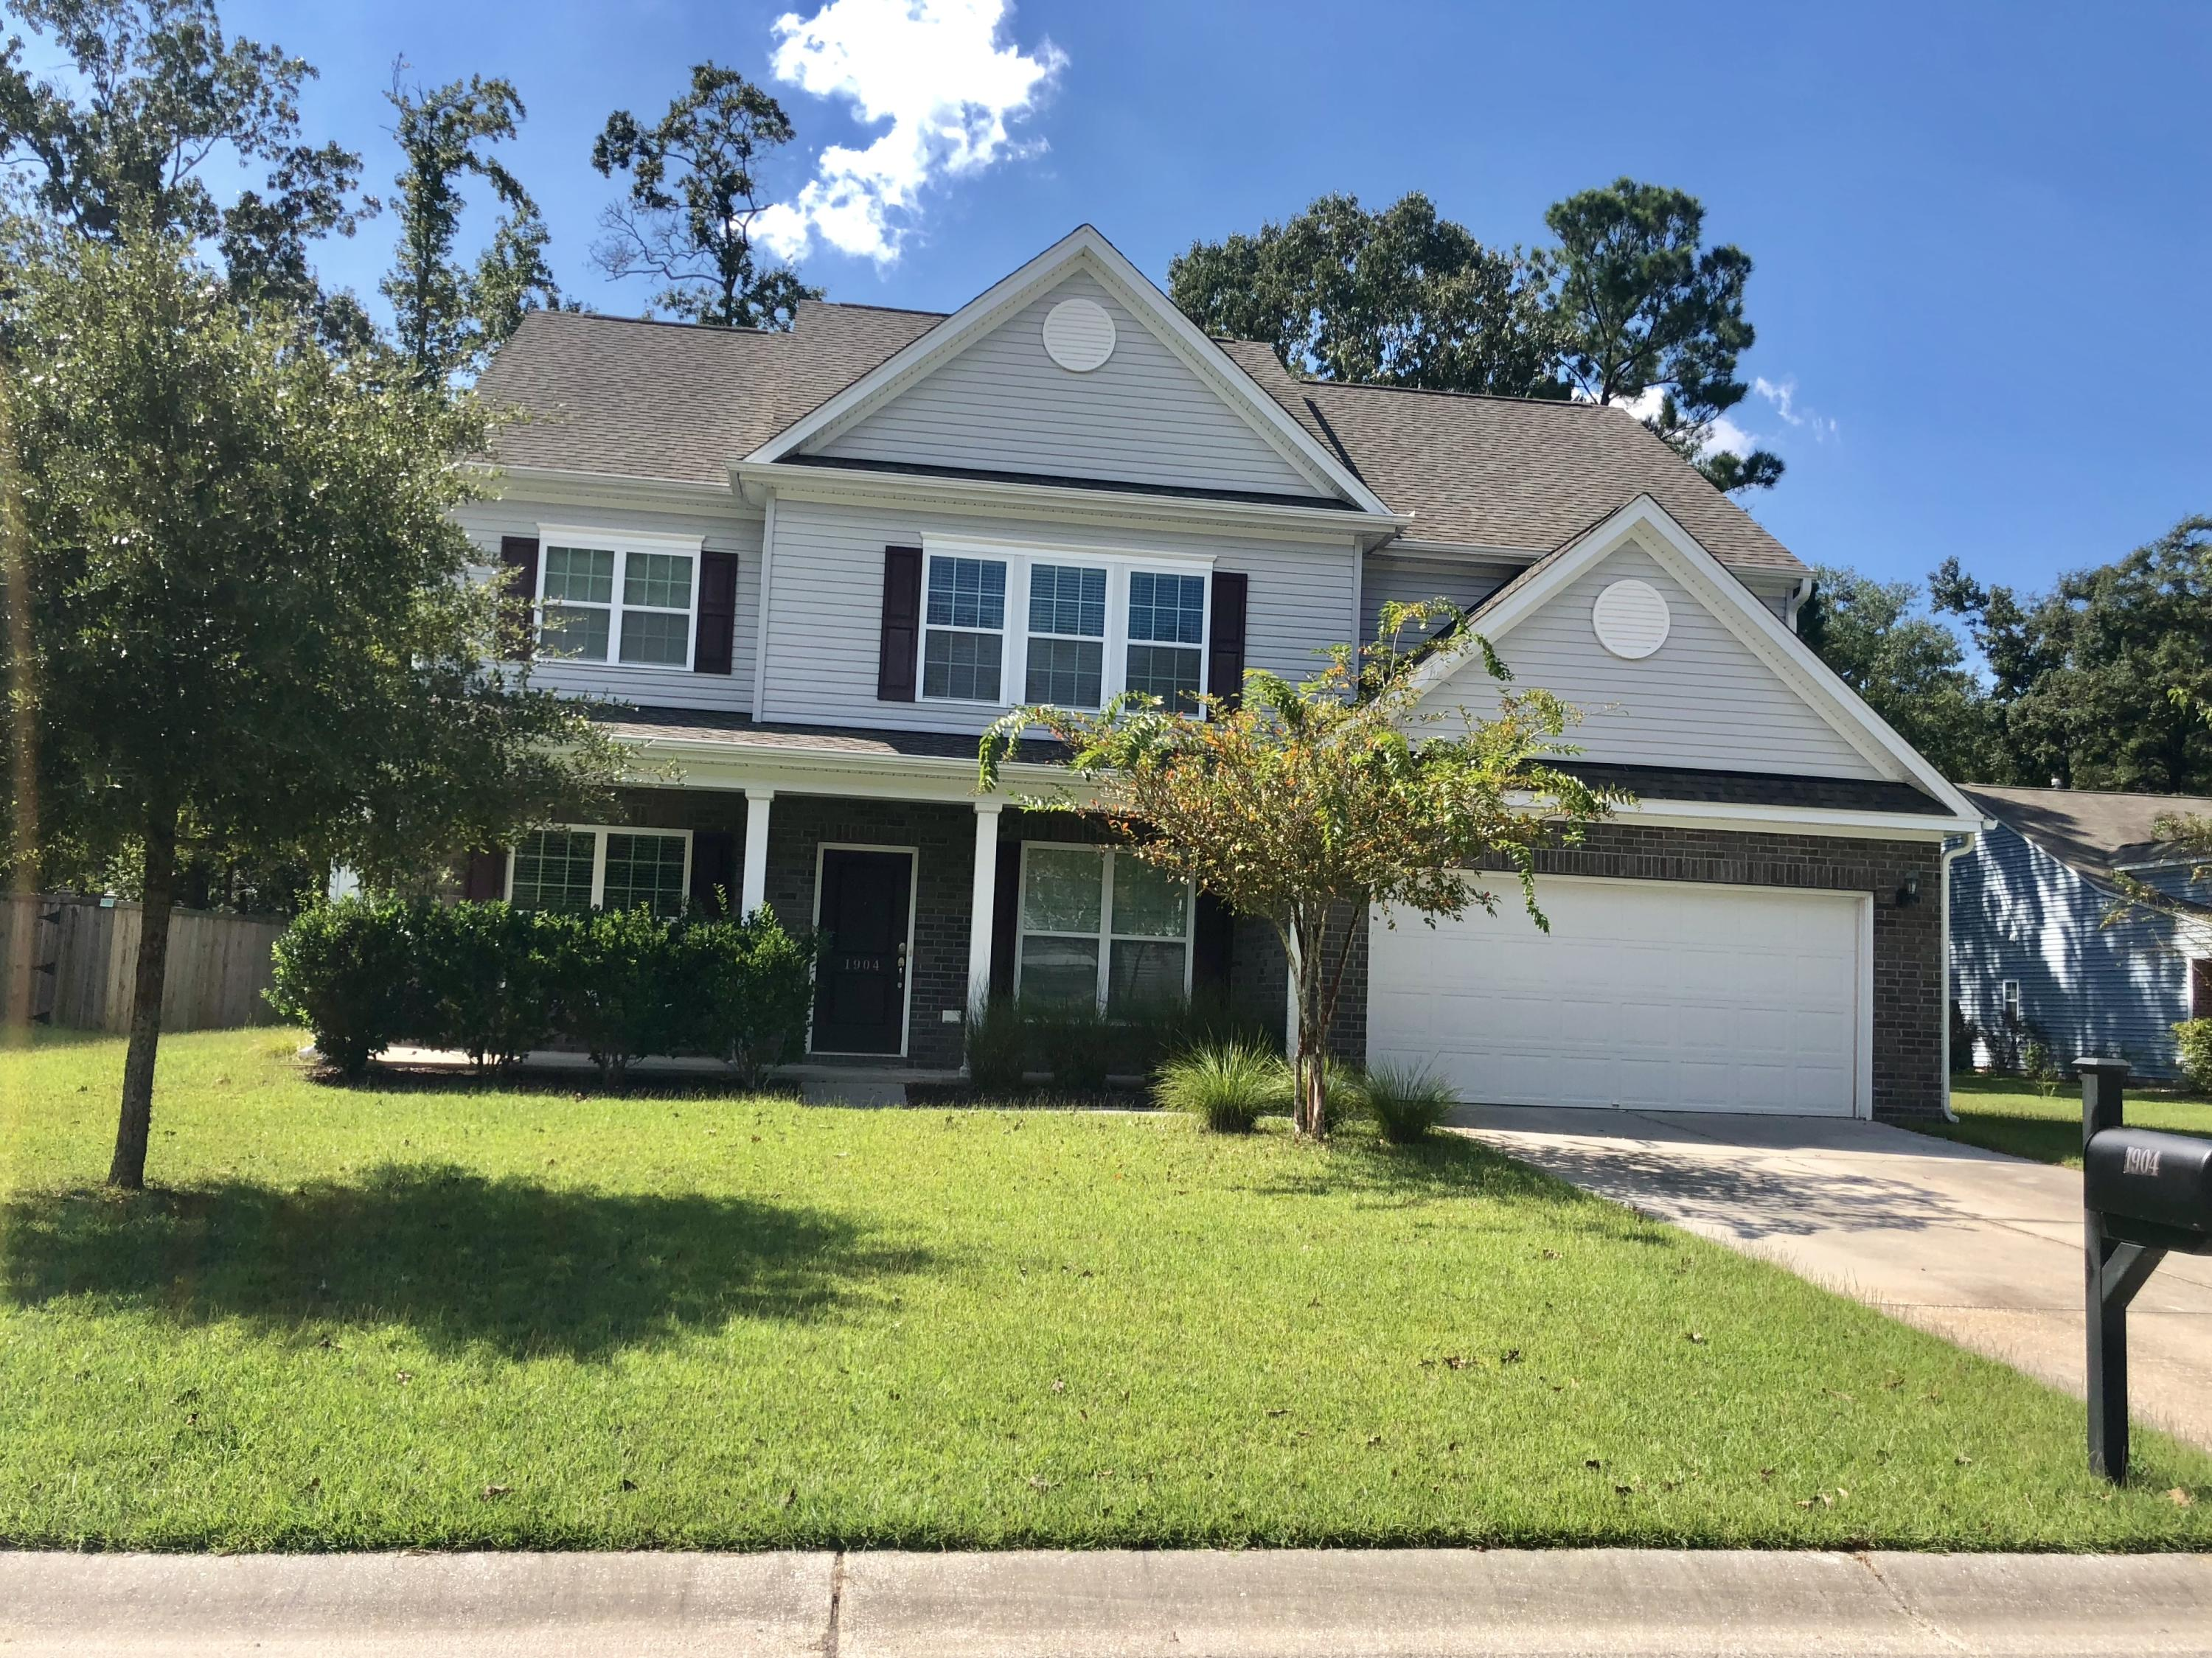 Photo of 1904 Crossbill Trail, Hanahan, SC 29410